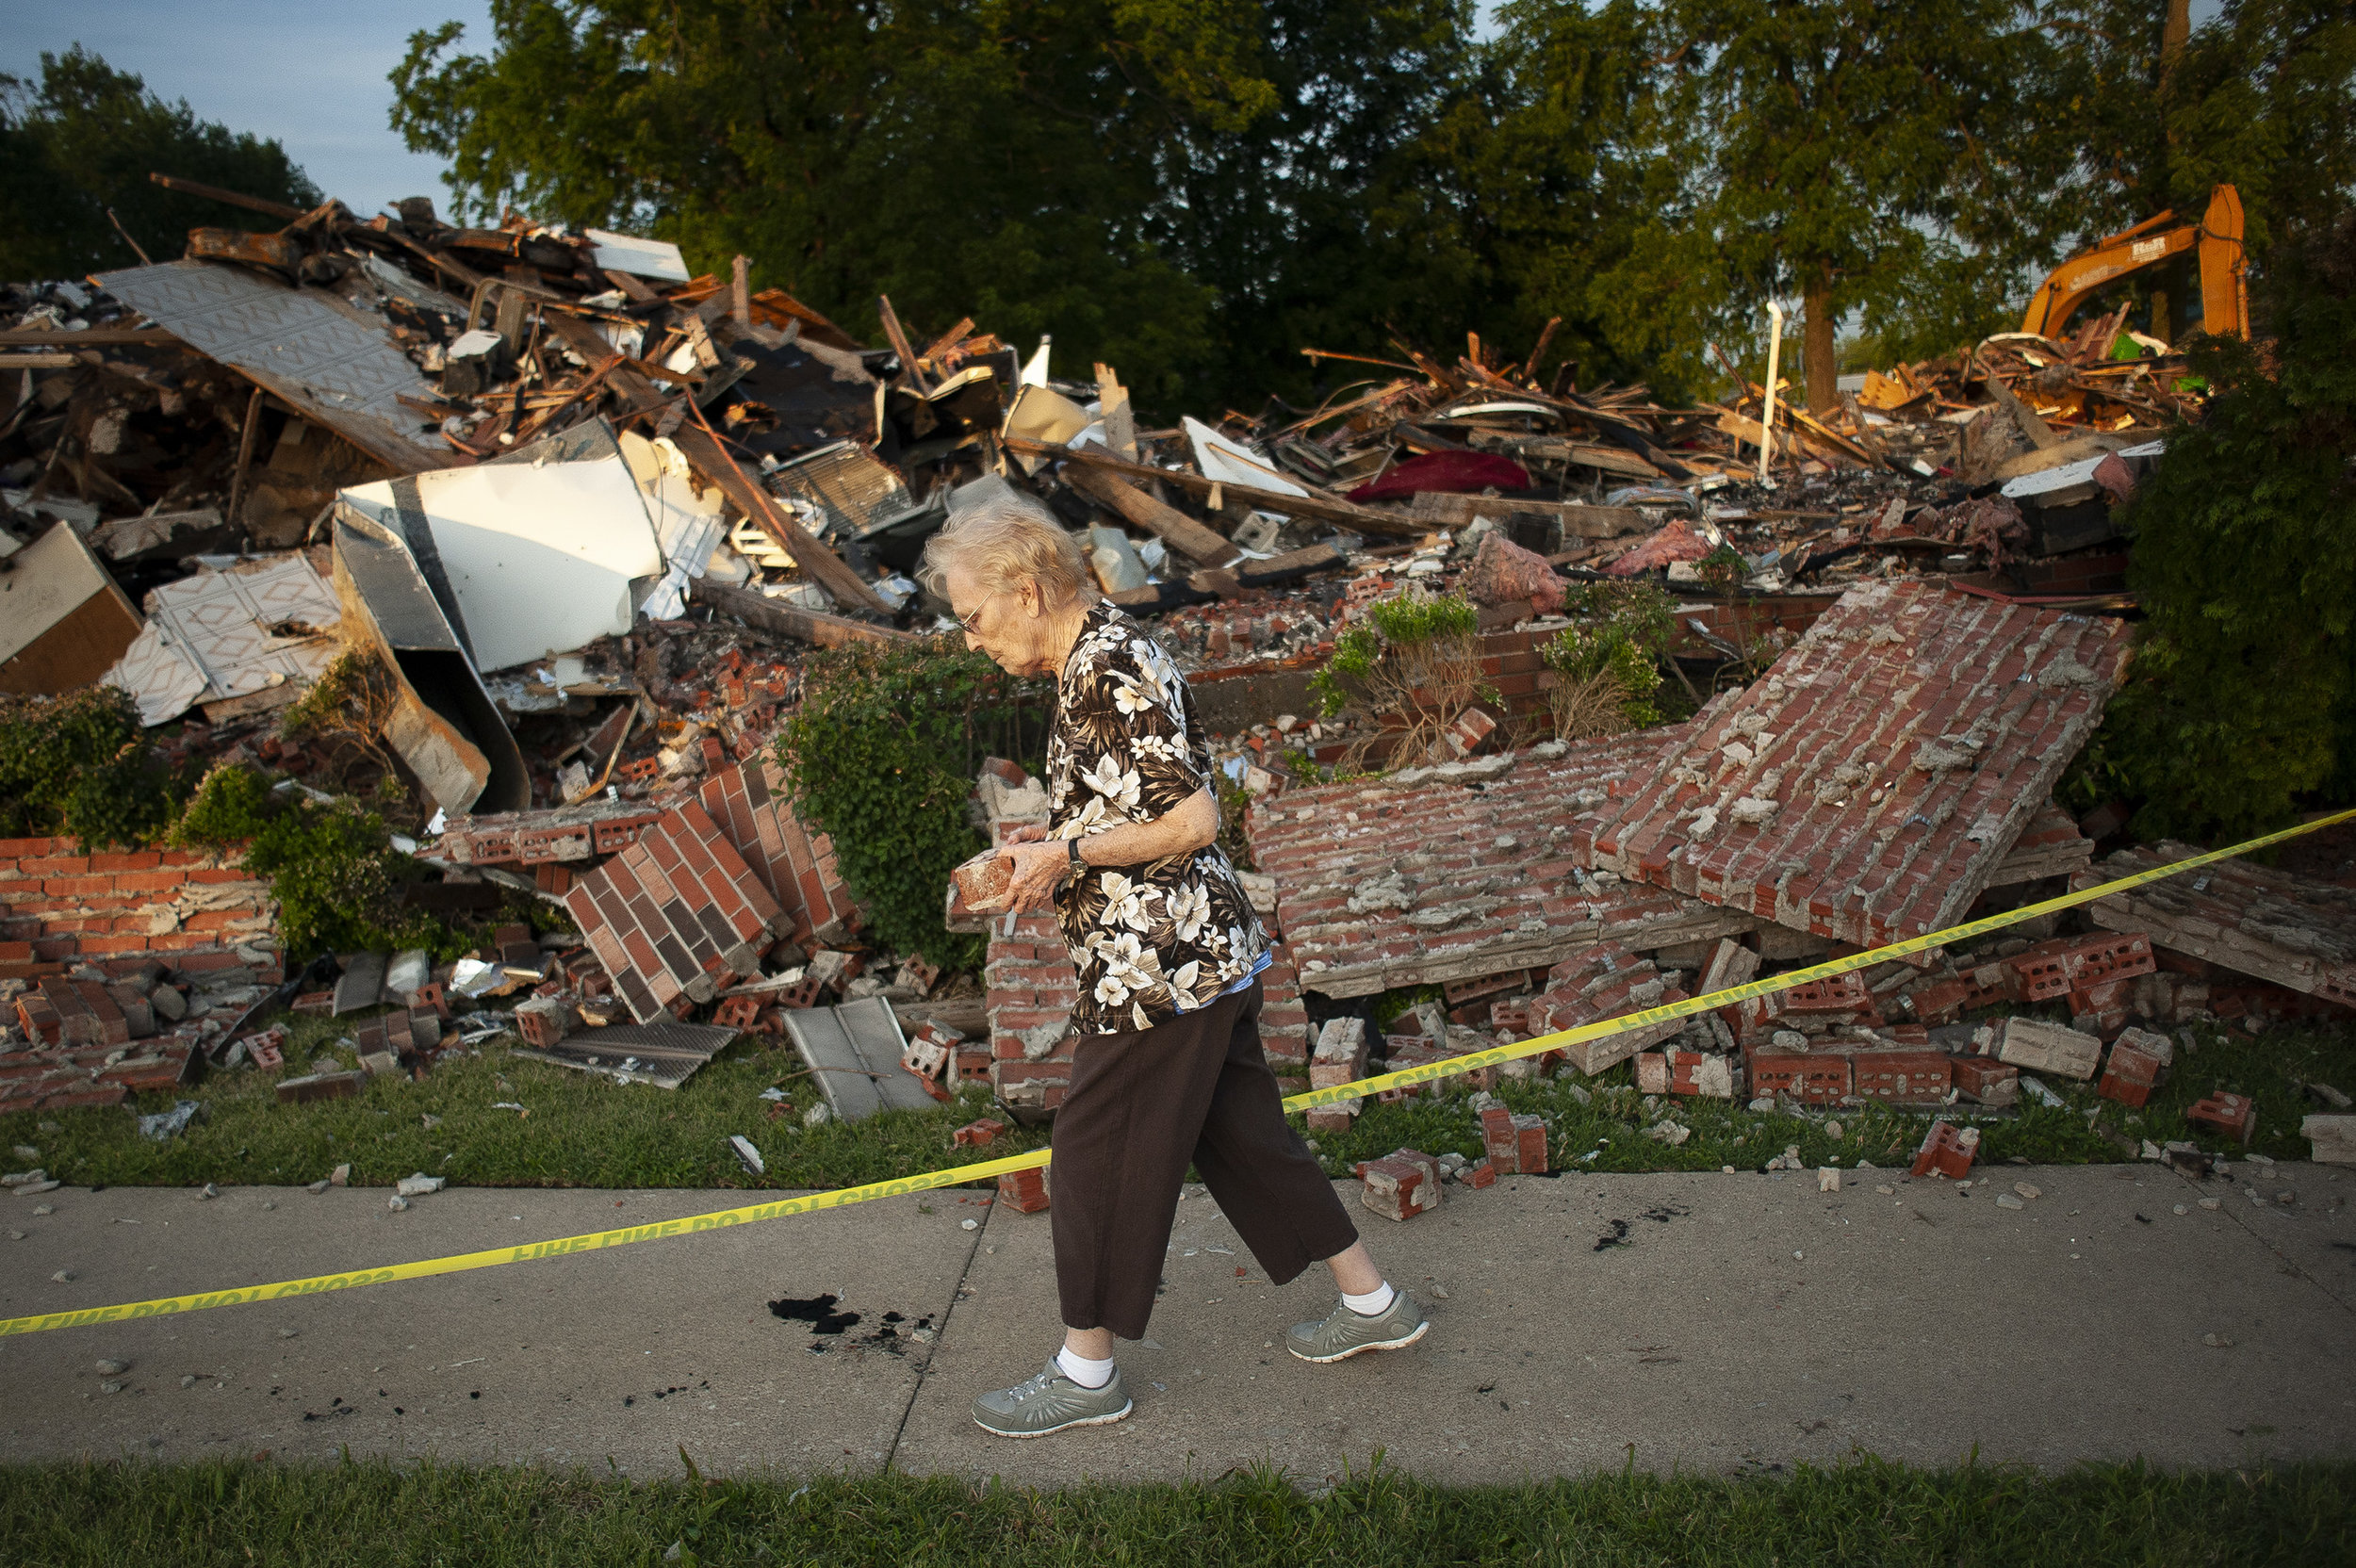 """Arleen Tipsword, who at age 90 believes herself to be the oldest member of Cornerstone Wesleyan Church, takes a brick as a souvenir from the remains of the church June 22 at 210 E. Outer Road in Scott City, Missouri. """"It's heartbreaking,"""" Tipsword said of the building that was destroyed in a fire during Friday afternoon's storm. """"I met my husband here in this church."""" She believes it was 1978 when she first attended the church where she would marry her husband in 1985. """"I mean this is most wonderful church family that we can depend on,"""" she said. — June 22, 2019, Scott City, Missouri."""